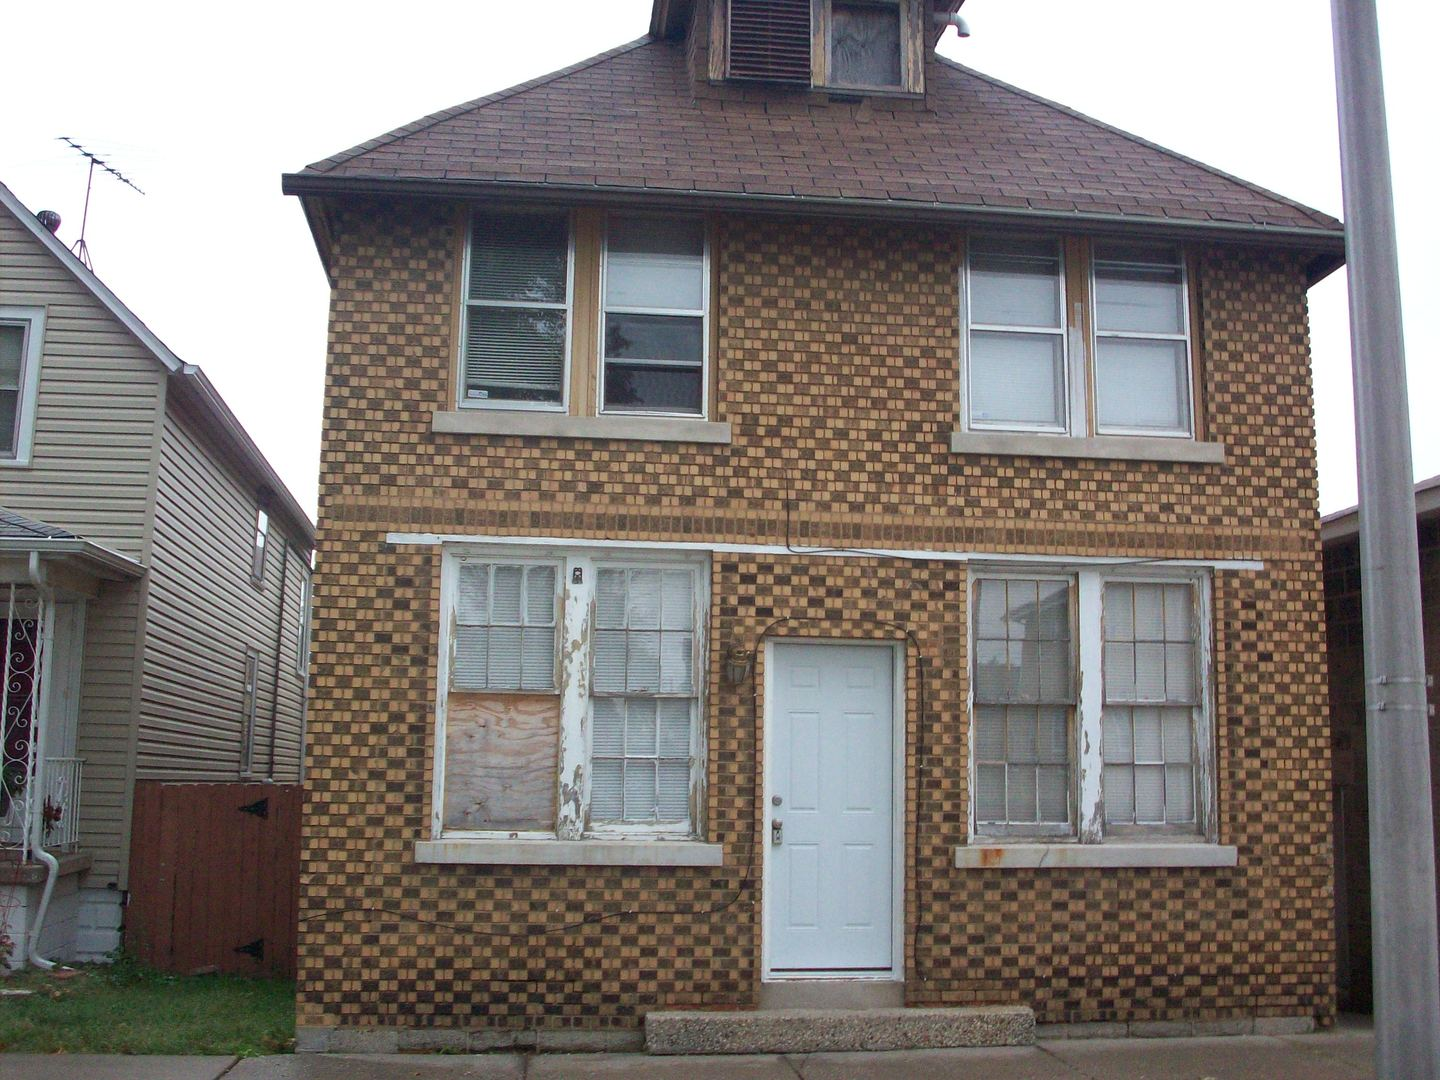 201 25th ,Chicago Heights, Illinois 60411